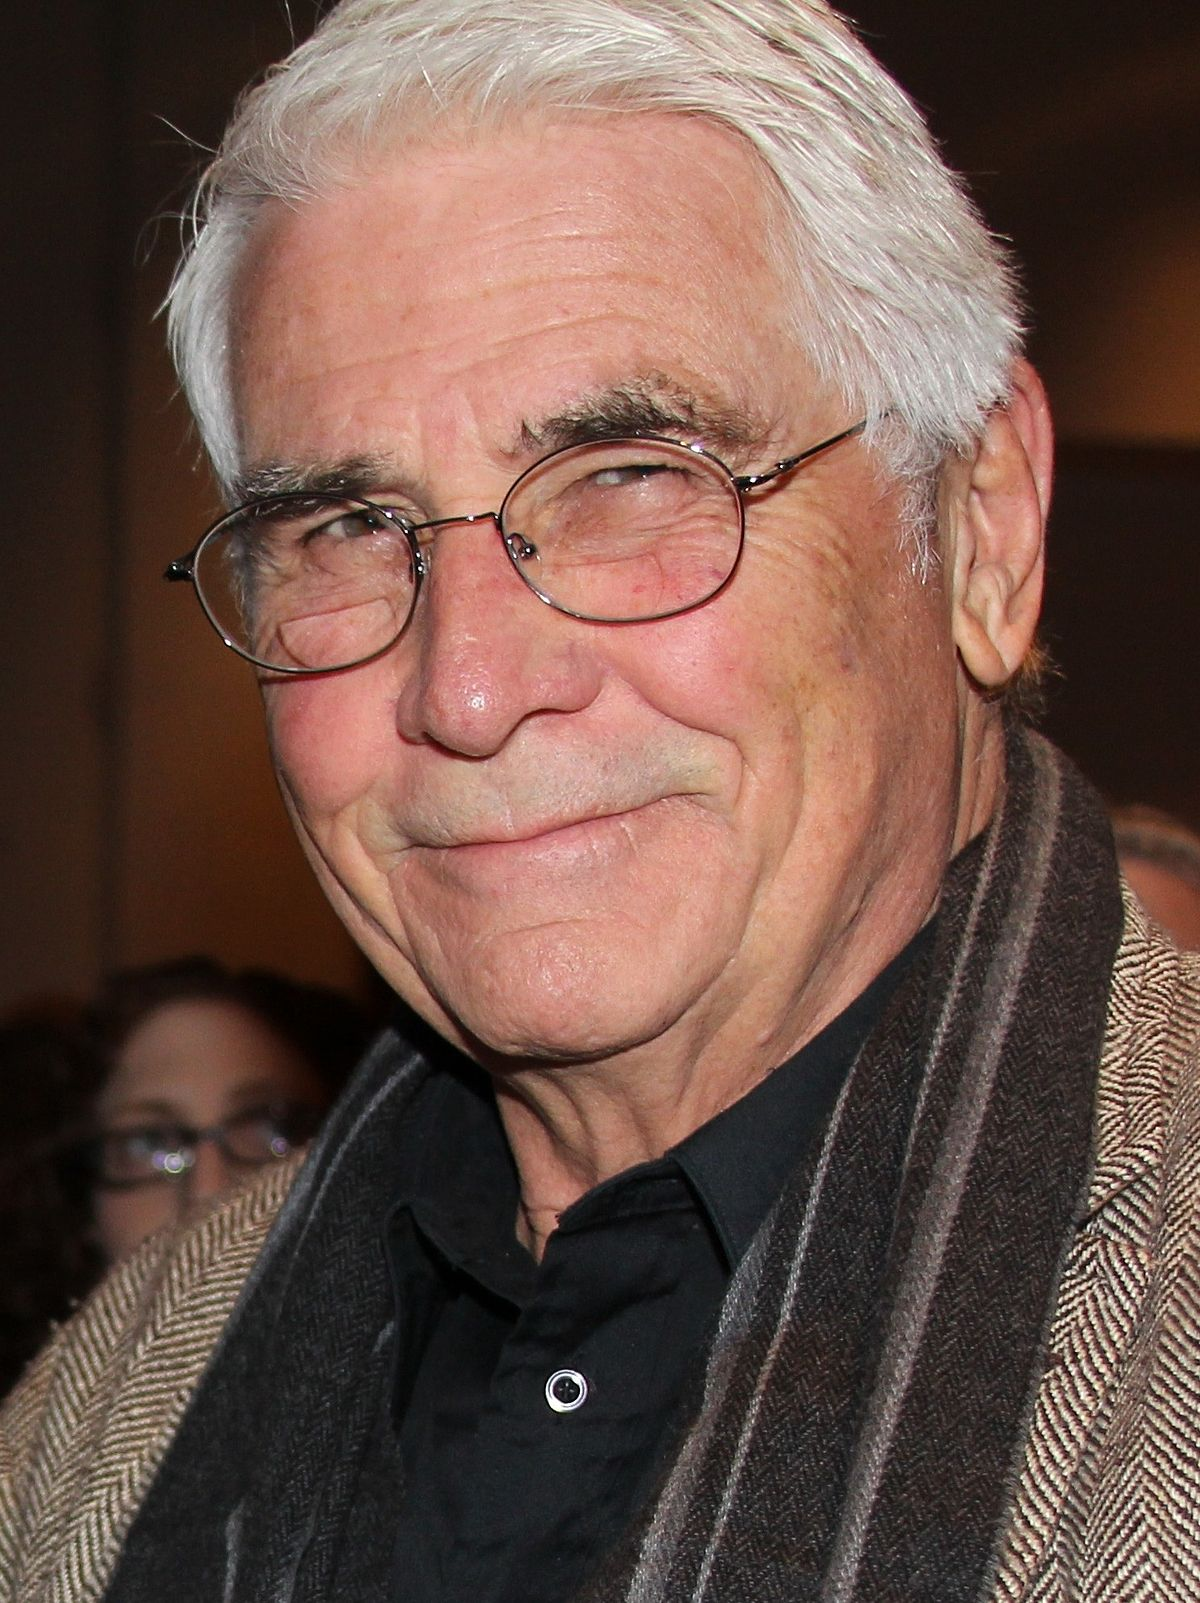 james brolin wikipedia - Home For Christmas 2002